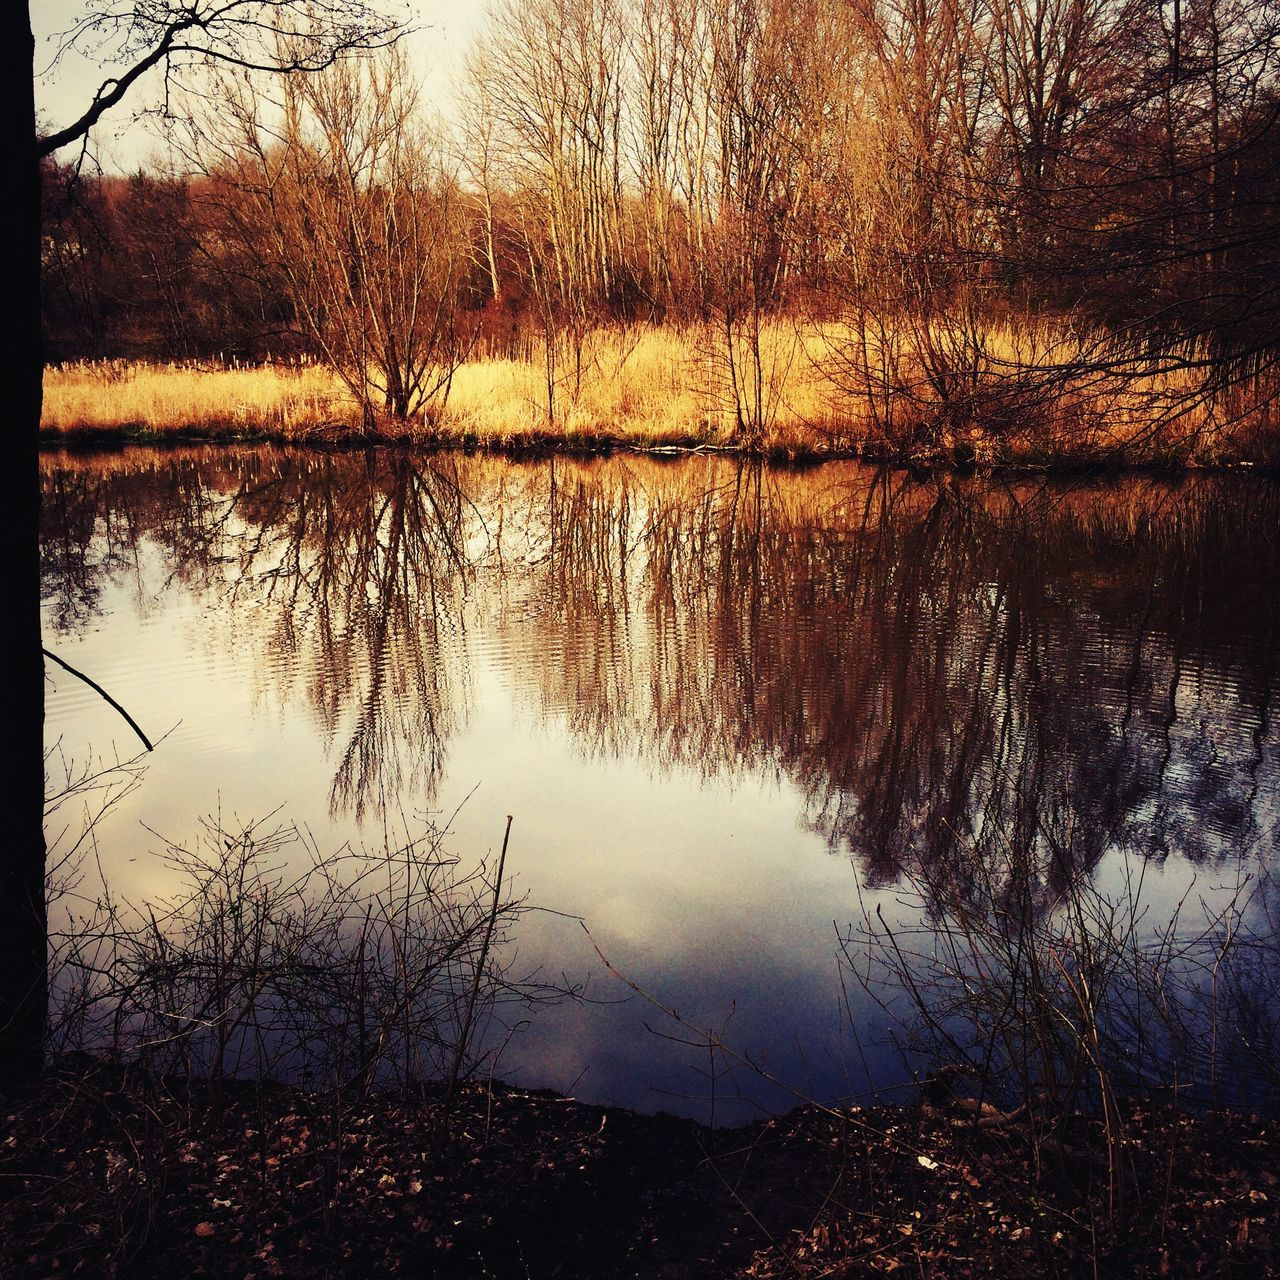 reflection, lake, nature, water, tranquil scene, tranquility, beauty in nature, scenics, no people, tree, outdoors, bare tree, sunset, day, sky, grass